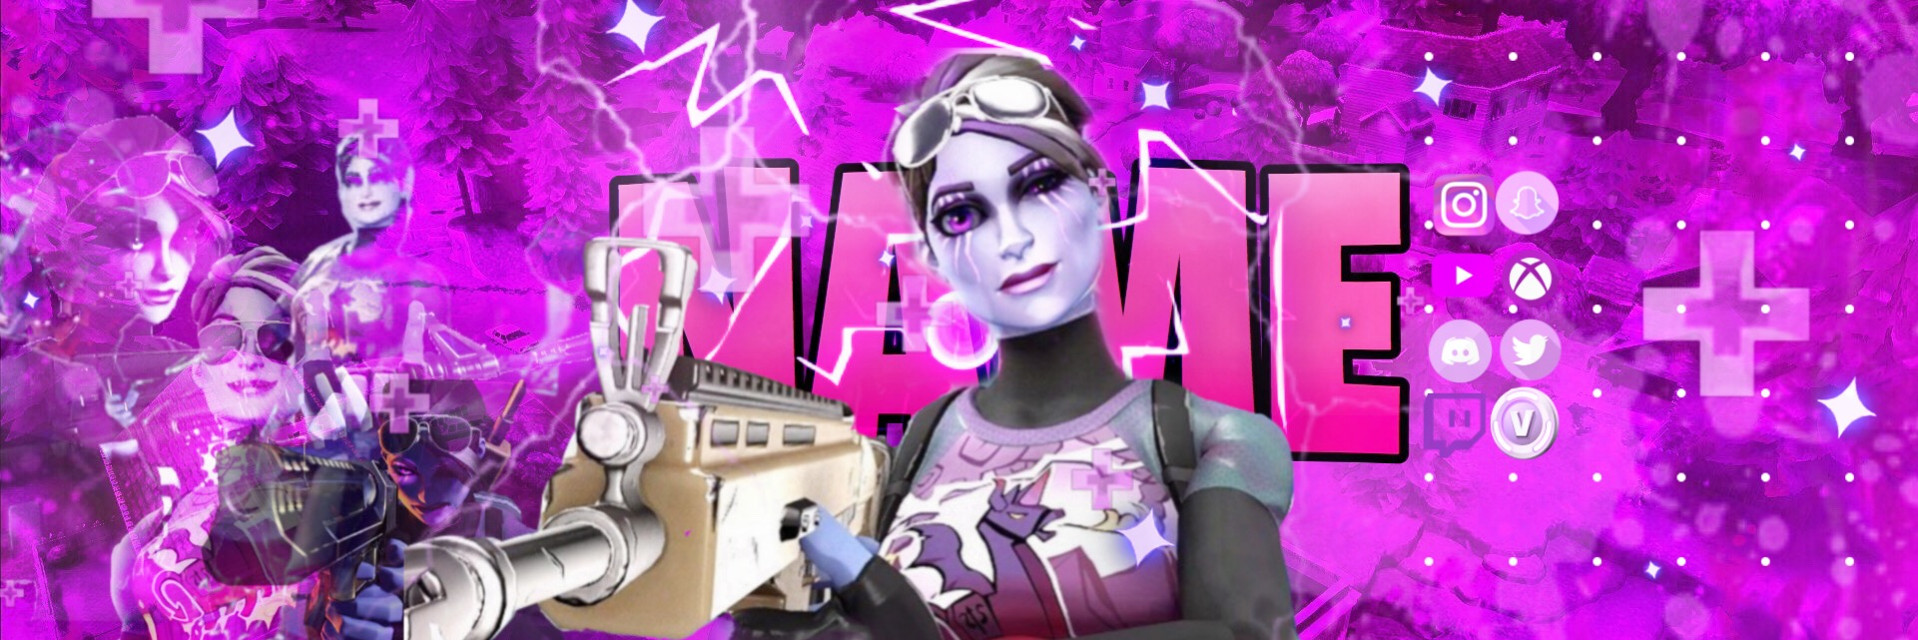 Making headers for people! 25 LIKES FOR TEMPLATE   Rate 1-10   Xbox: Yhist oT Epic: Yhist   IGNORE TAGS 🚫 #Fortnite #fortniteheader #fortnitelogo #fortnitesfm #fortnitebr #fortnitelogos #fortniteskin #fortniteskins #fortnitegfx #fortniteseason9 #fortnitebattleroyale #fortnitethumbnail #fortniteisbad #fortnitetwitter #yhist #fuzion #fuzionrc well actually im not grinding for fuzion #gfx #logo #logos